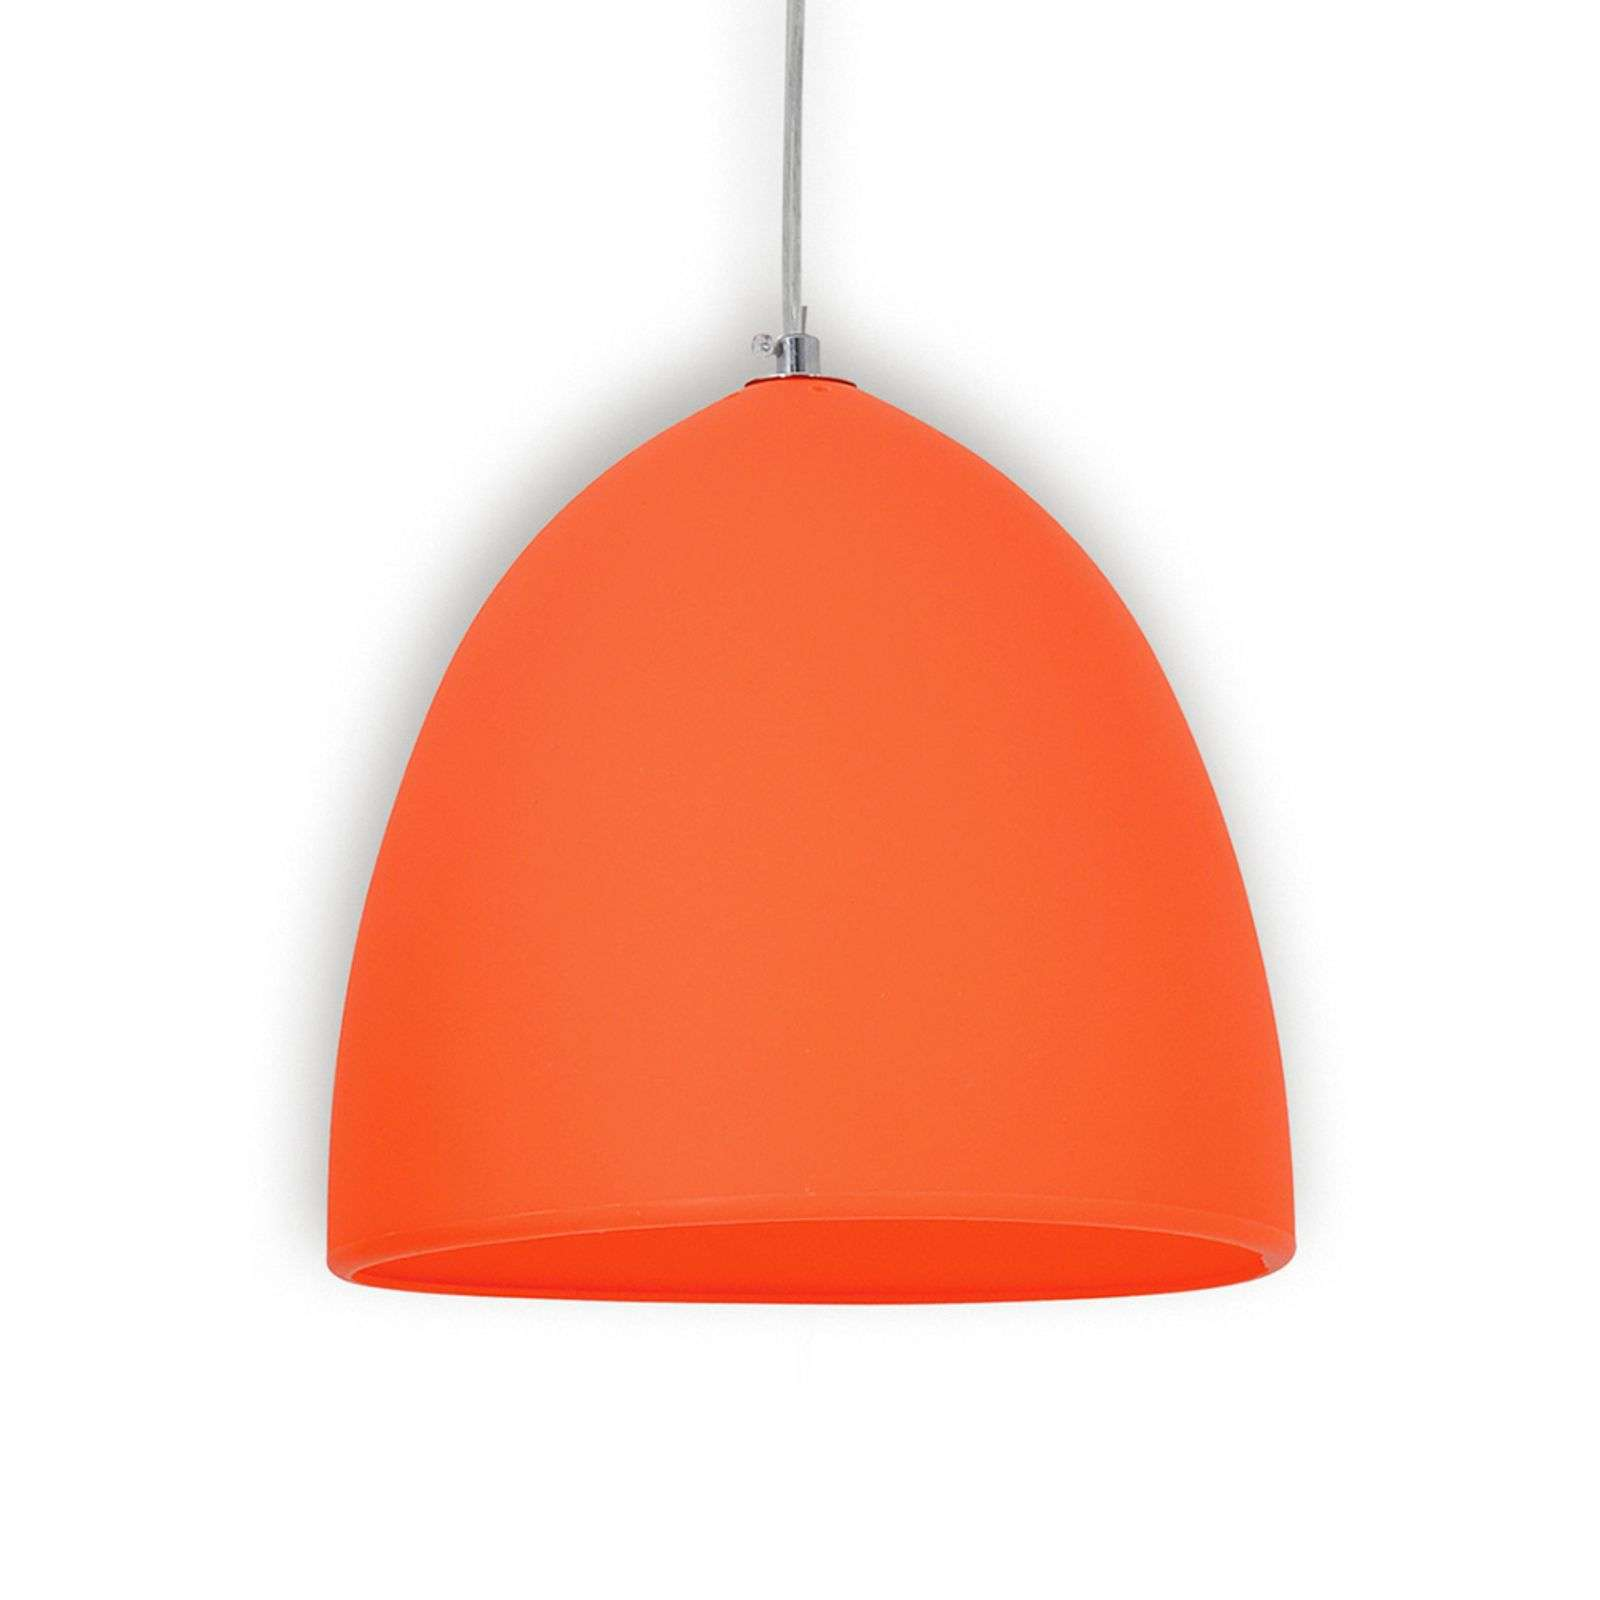 Suspension en silicone Fancy, orange